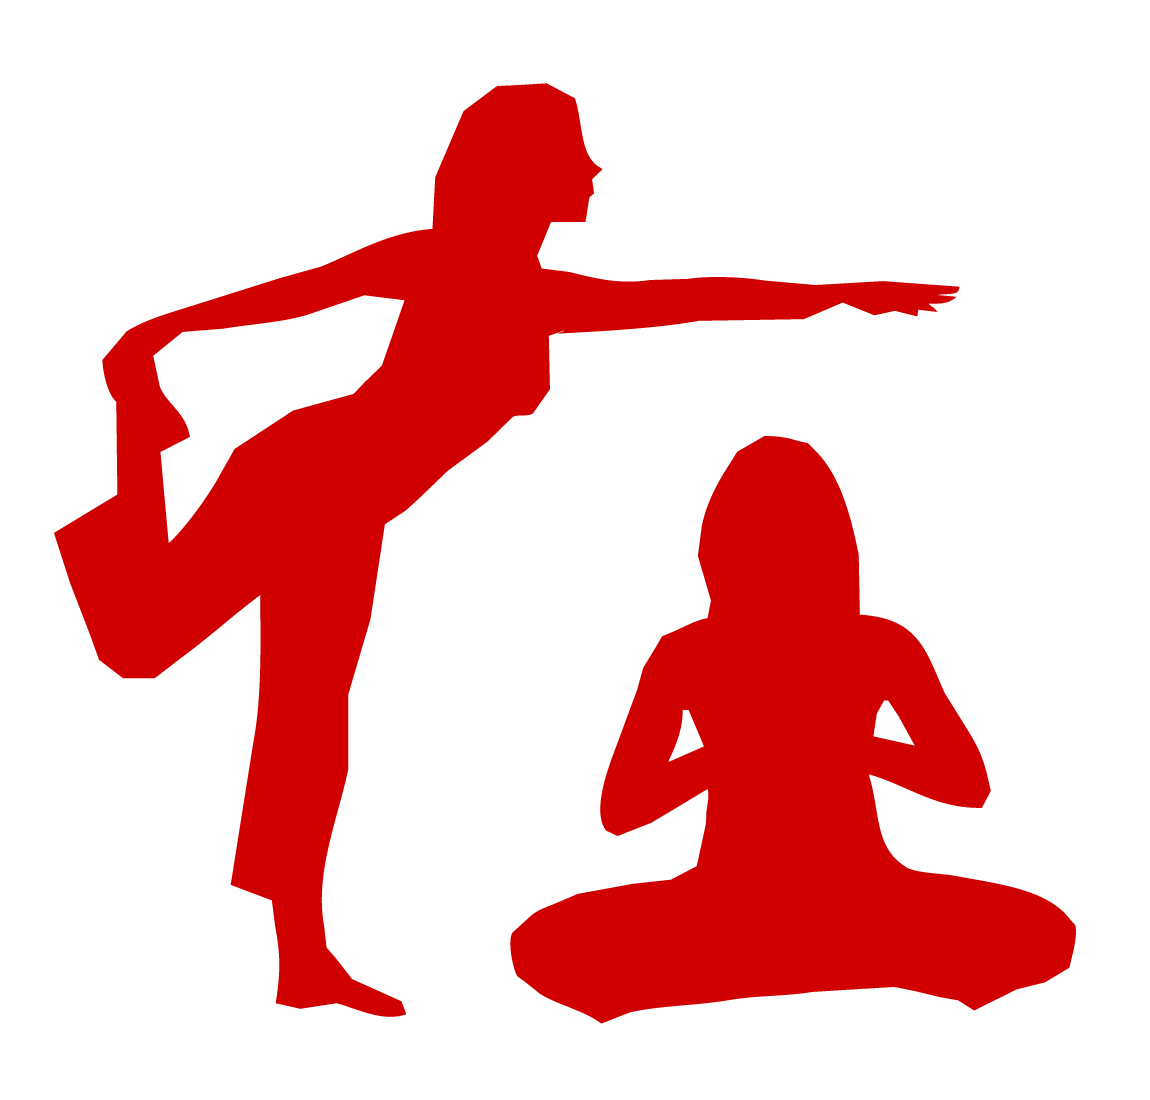 Exercise clipart fitness class. Leisure yoga pencil and